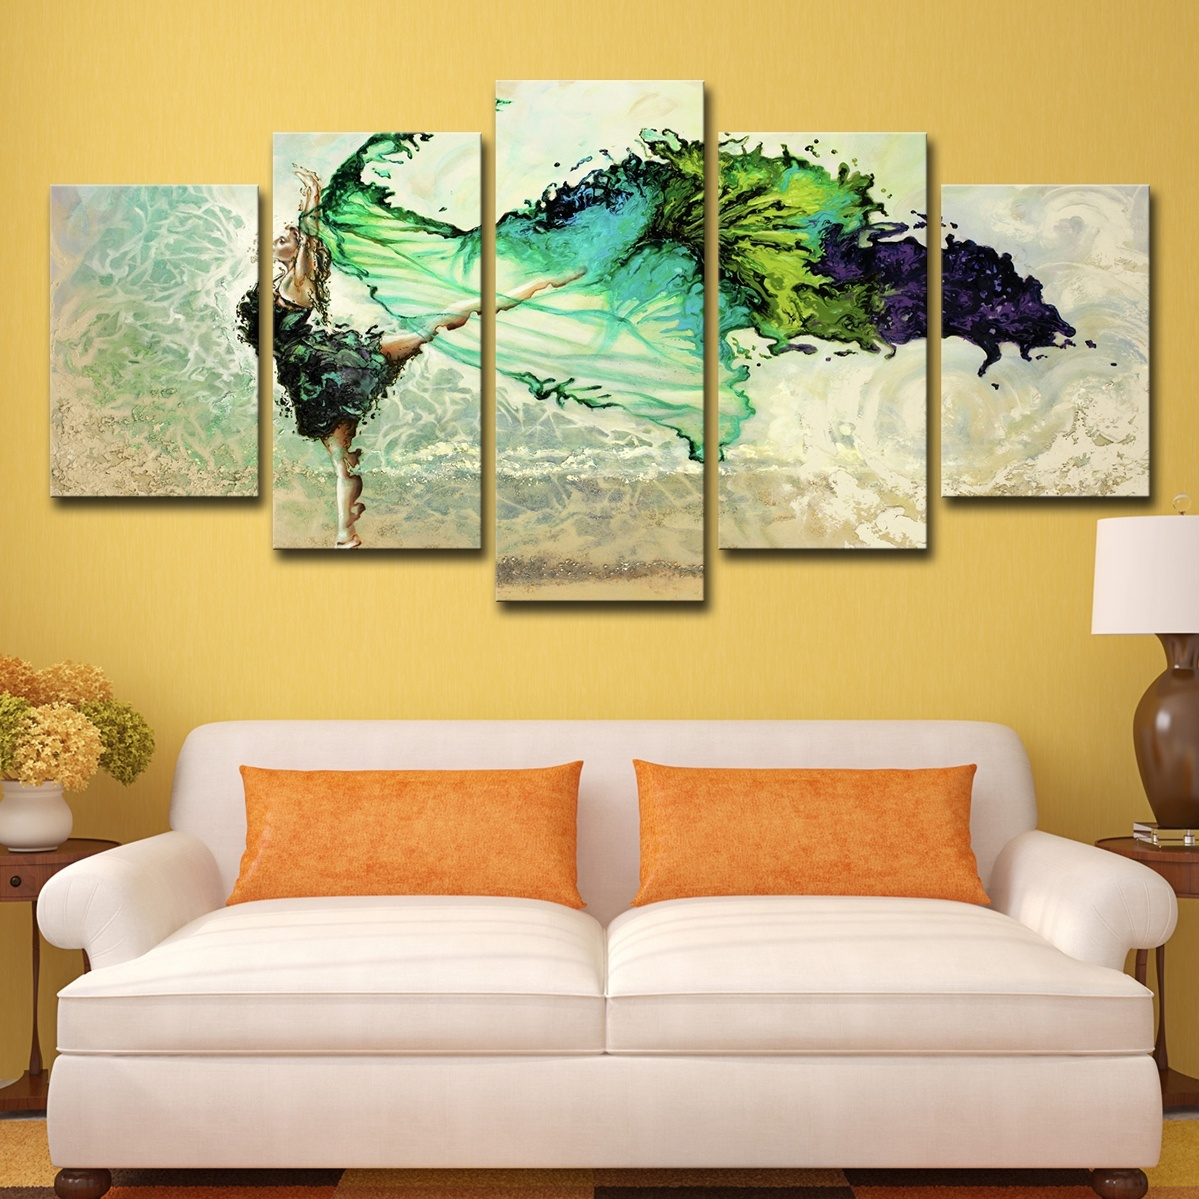 Butterfly Girl Stretched Canvas Print Framed Home Living Wall Office Decor Gift